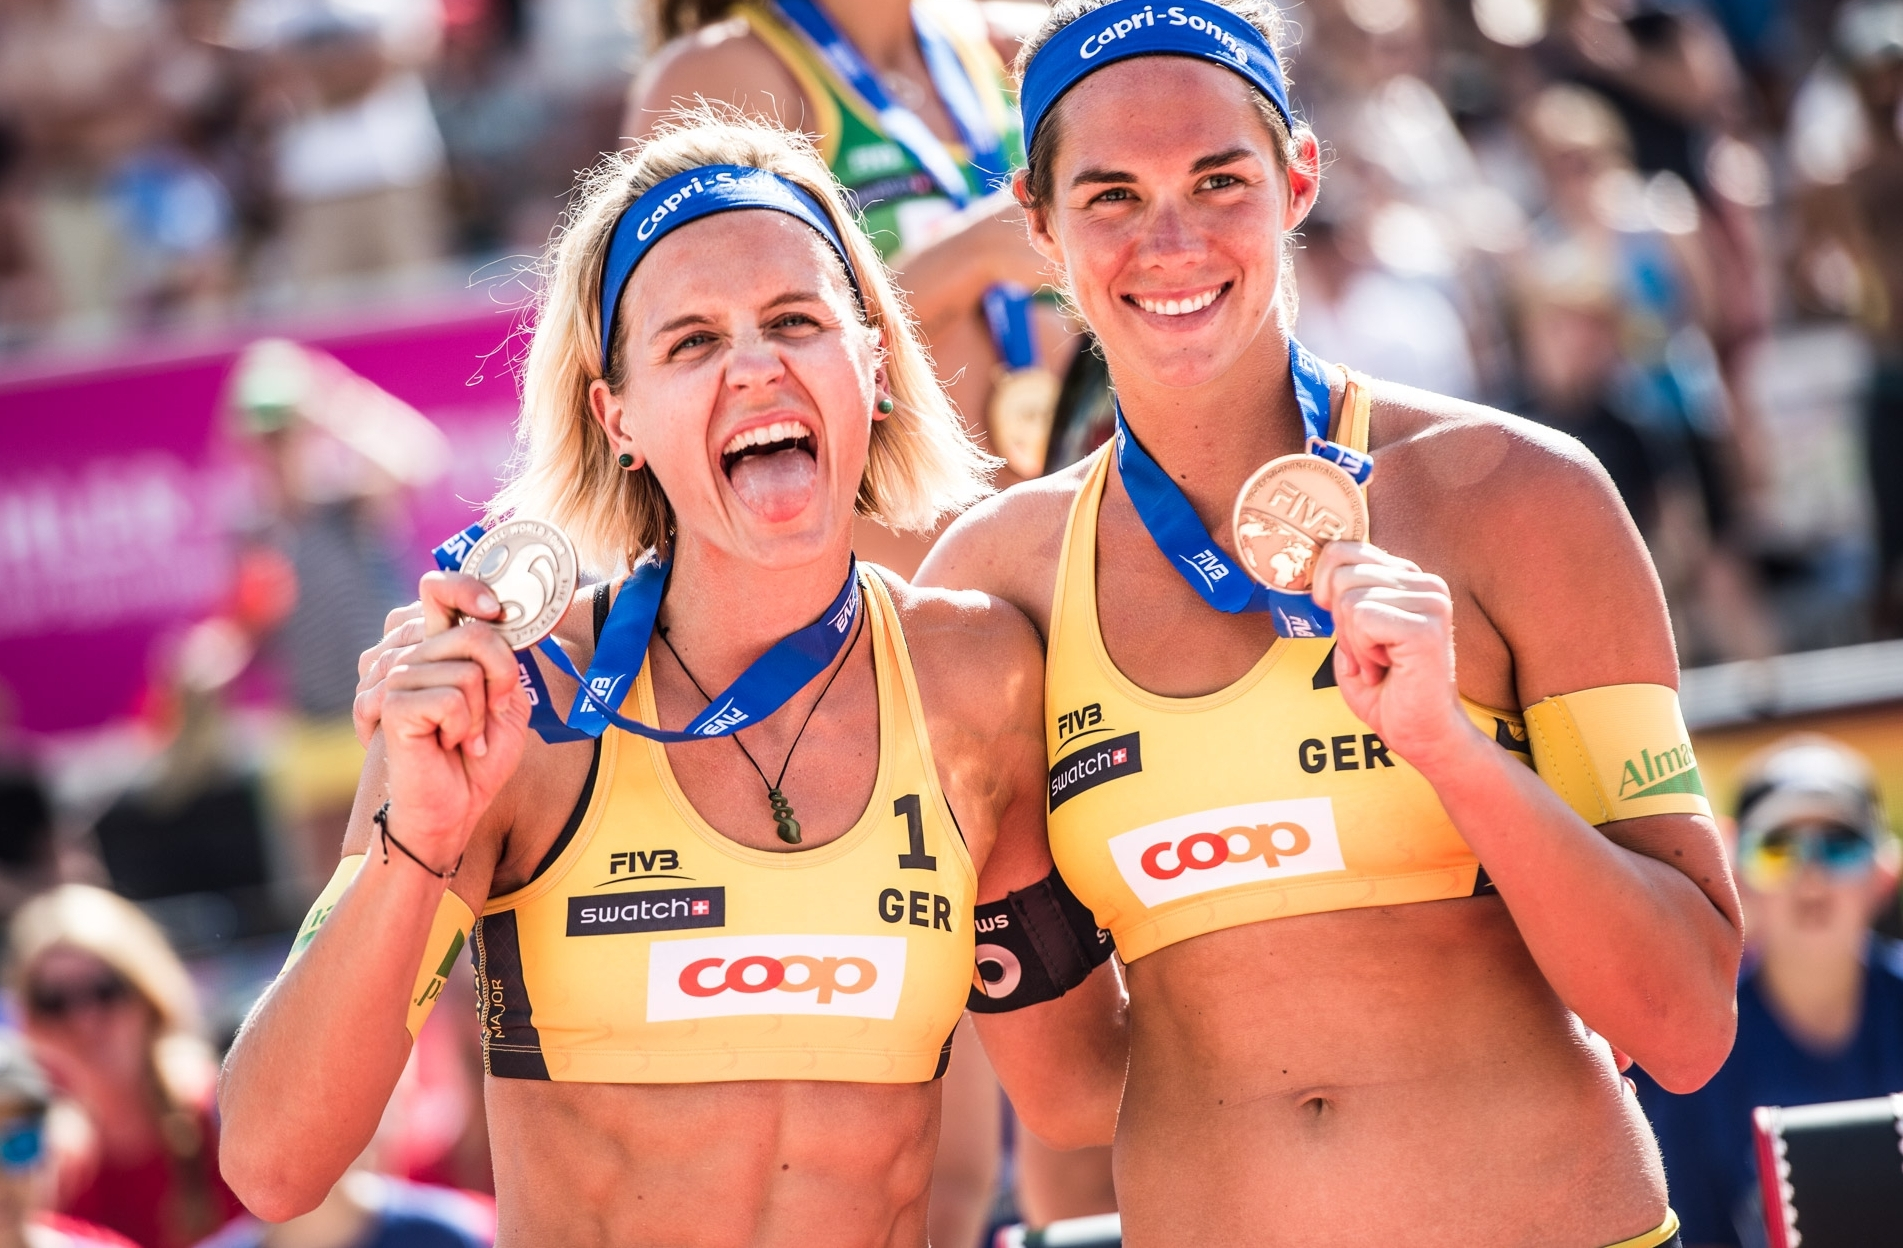 Laura (left) and Kira won Olympic gold but have one last prize to play for in Toronto. Photocredit: Mihai Stetcu